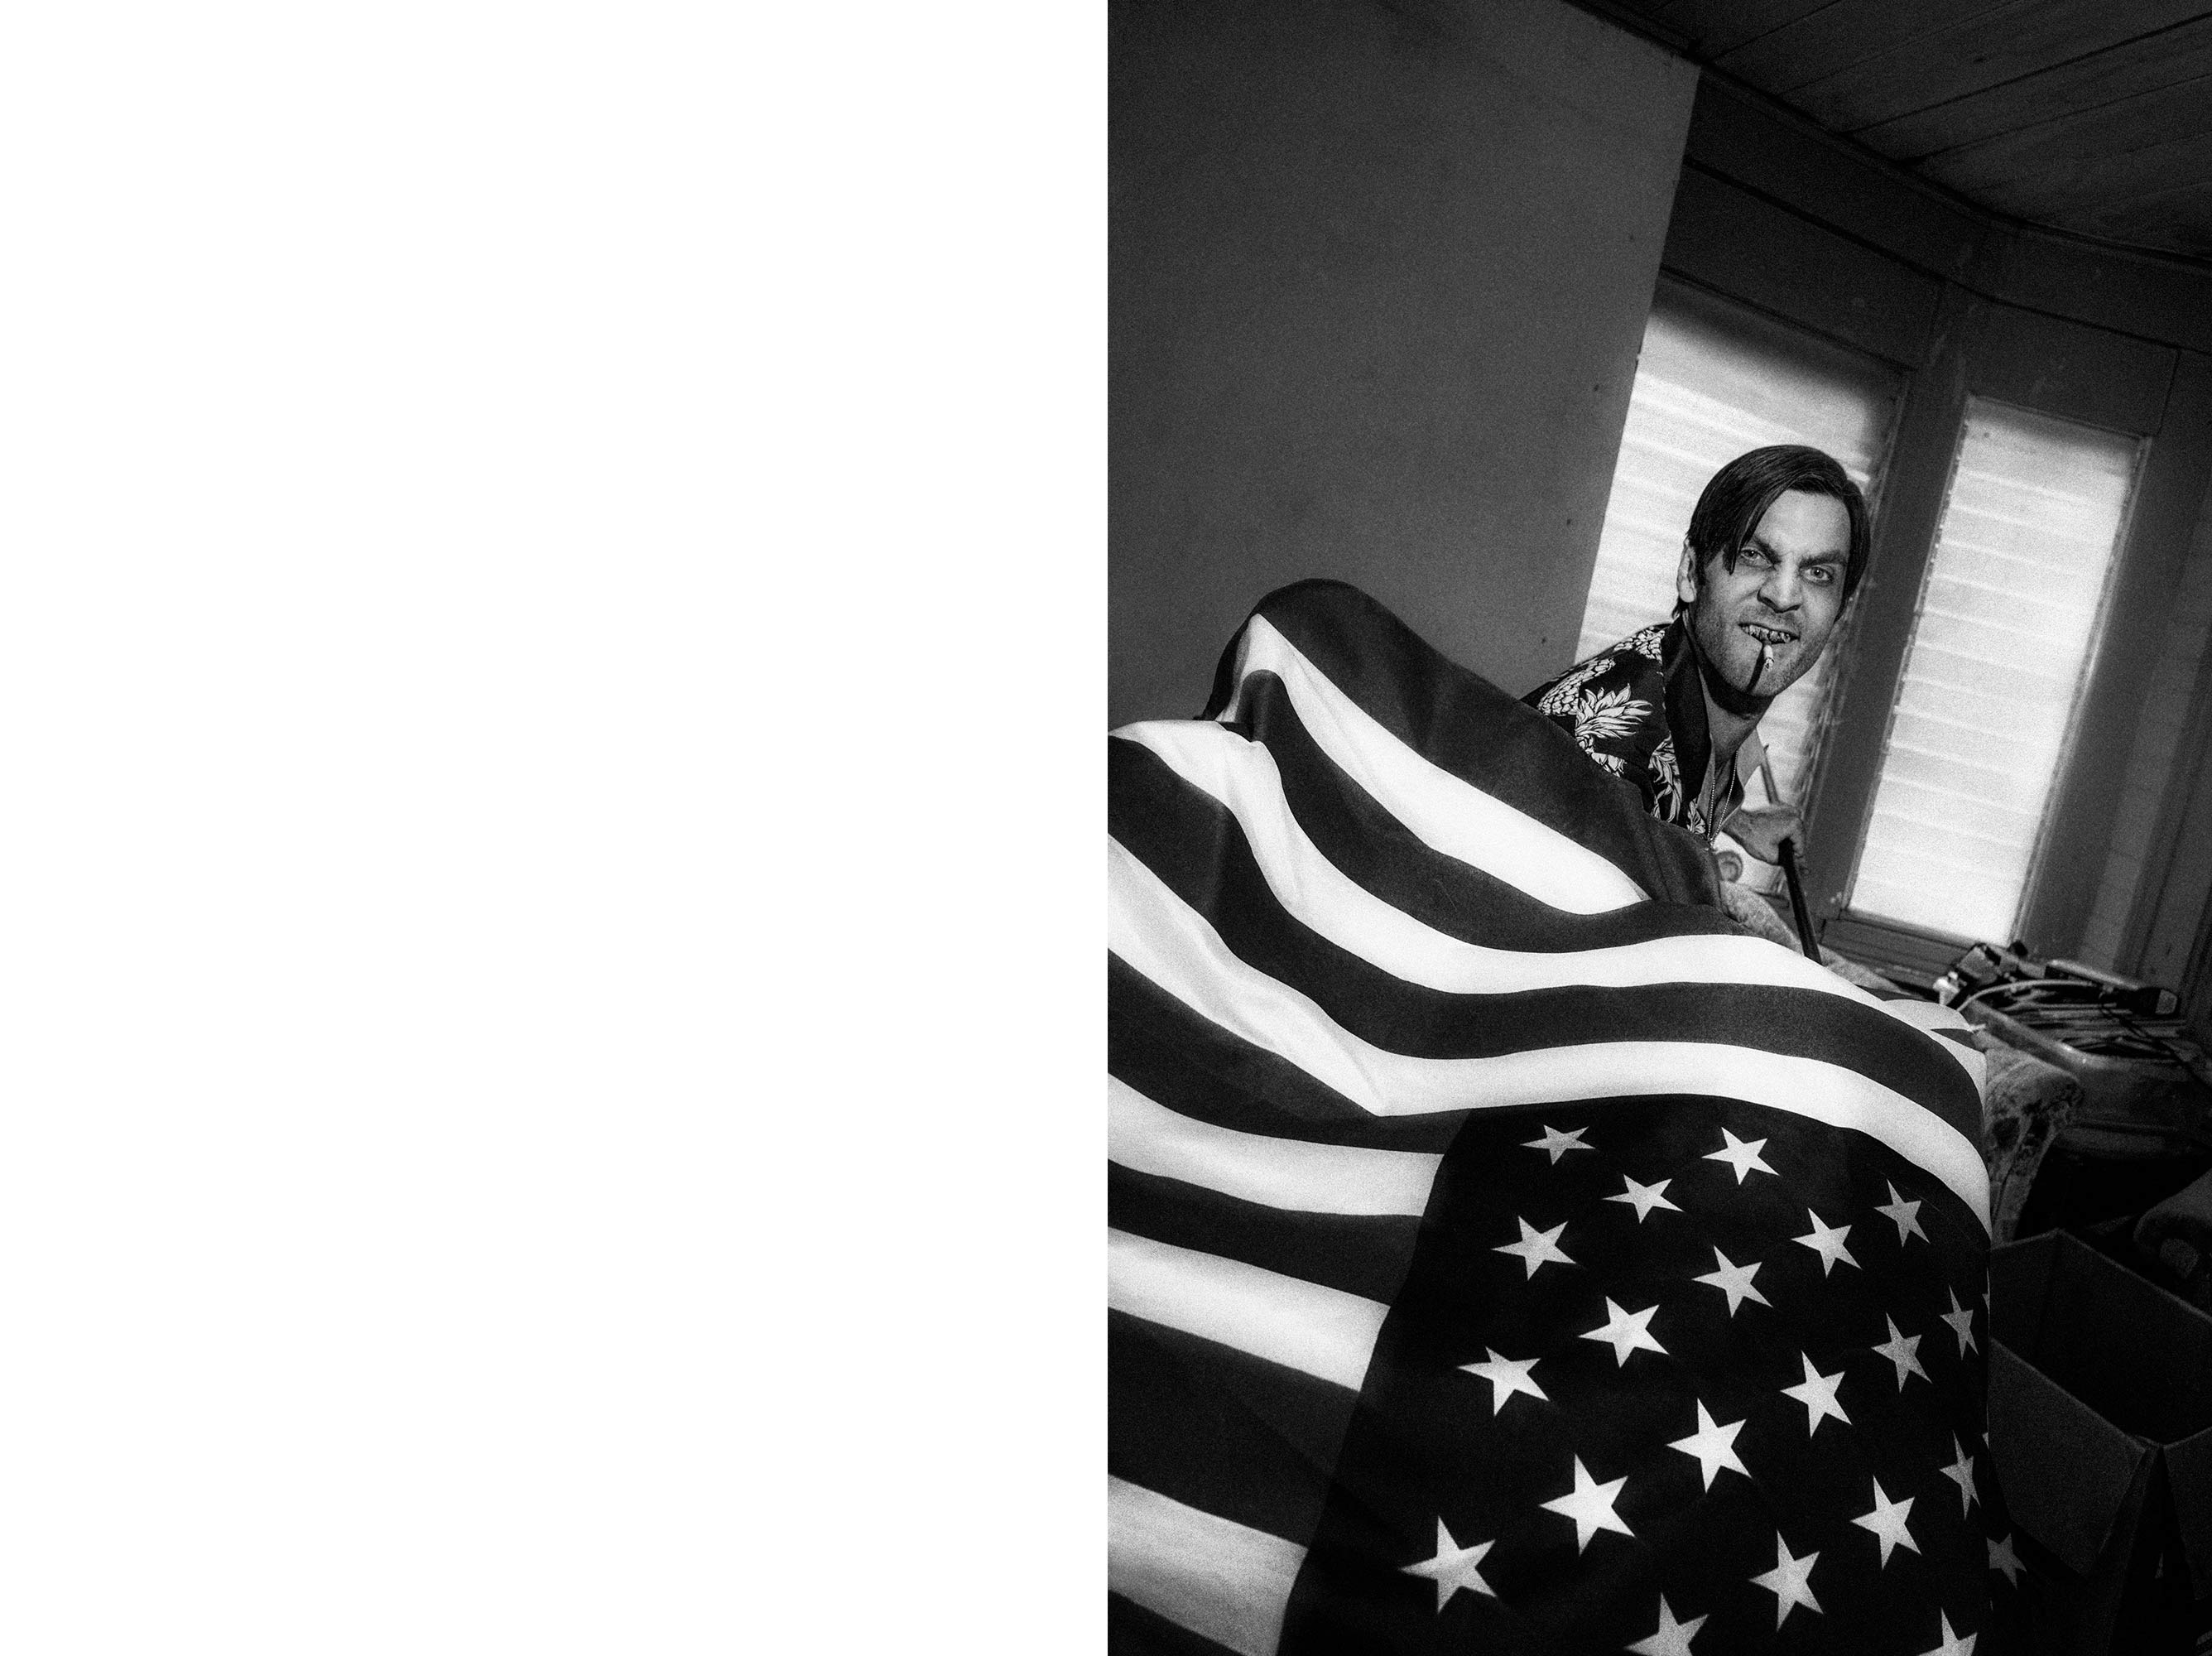 Photo of Wes Bentley holding american flag for lady gaga v magazine shoot by Chadwick tyler